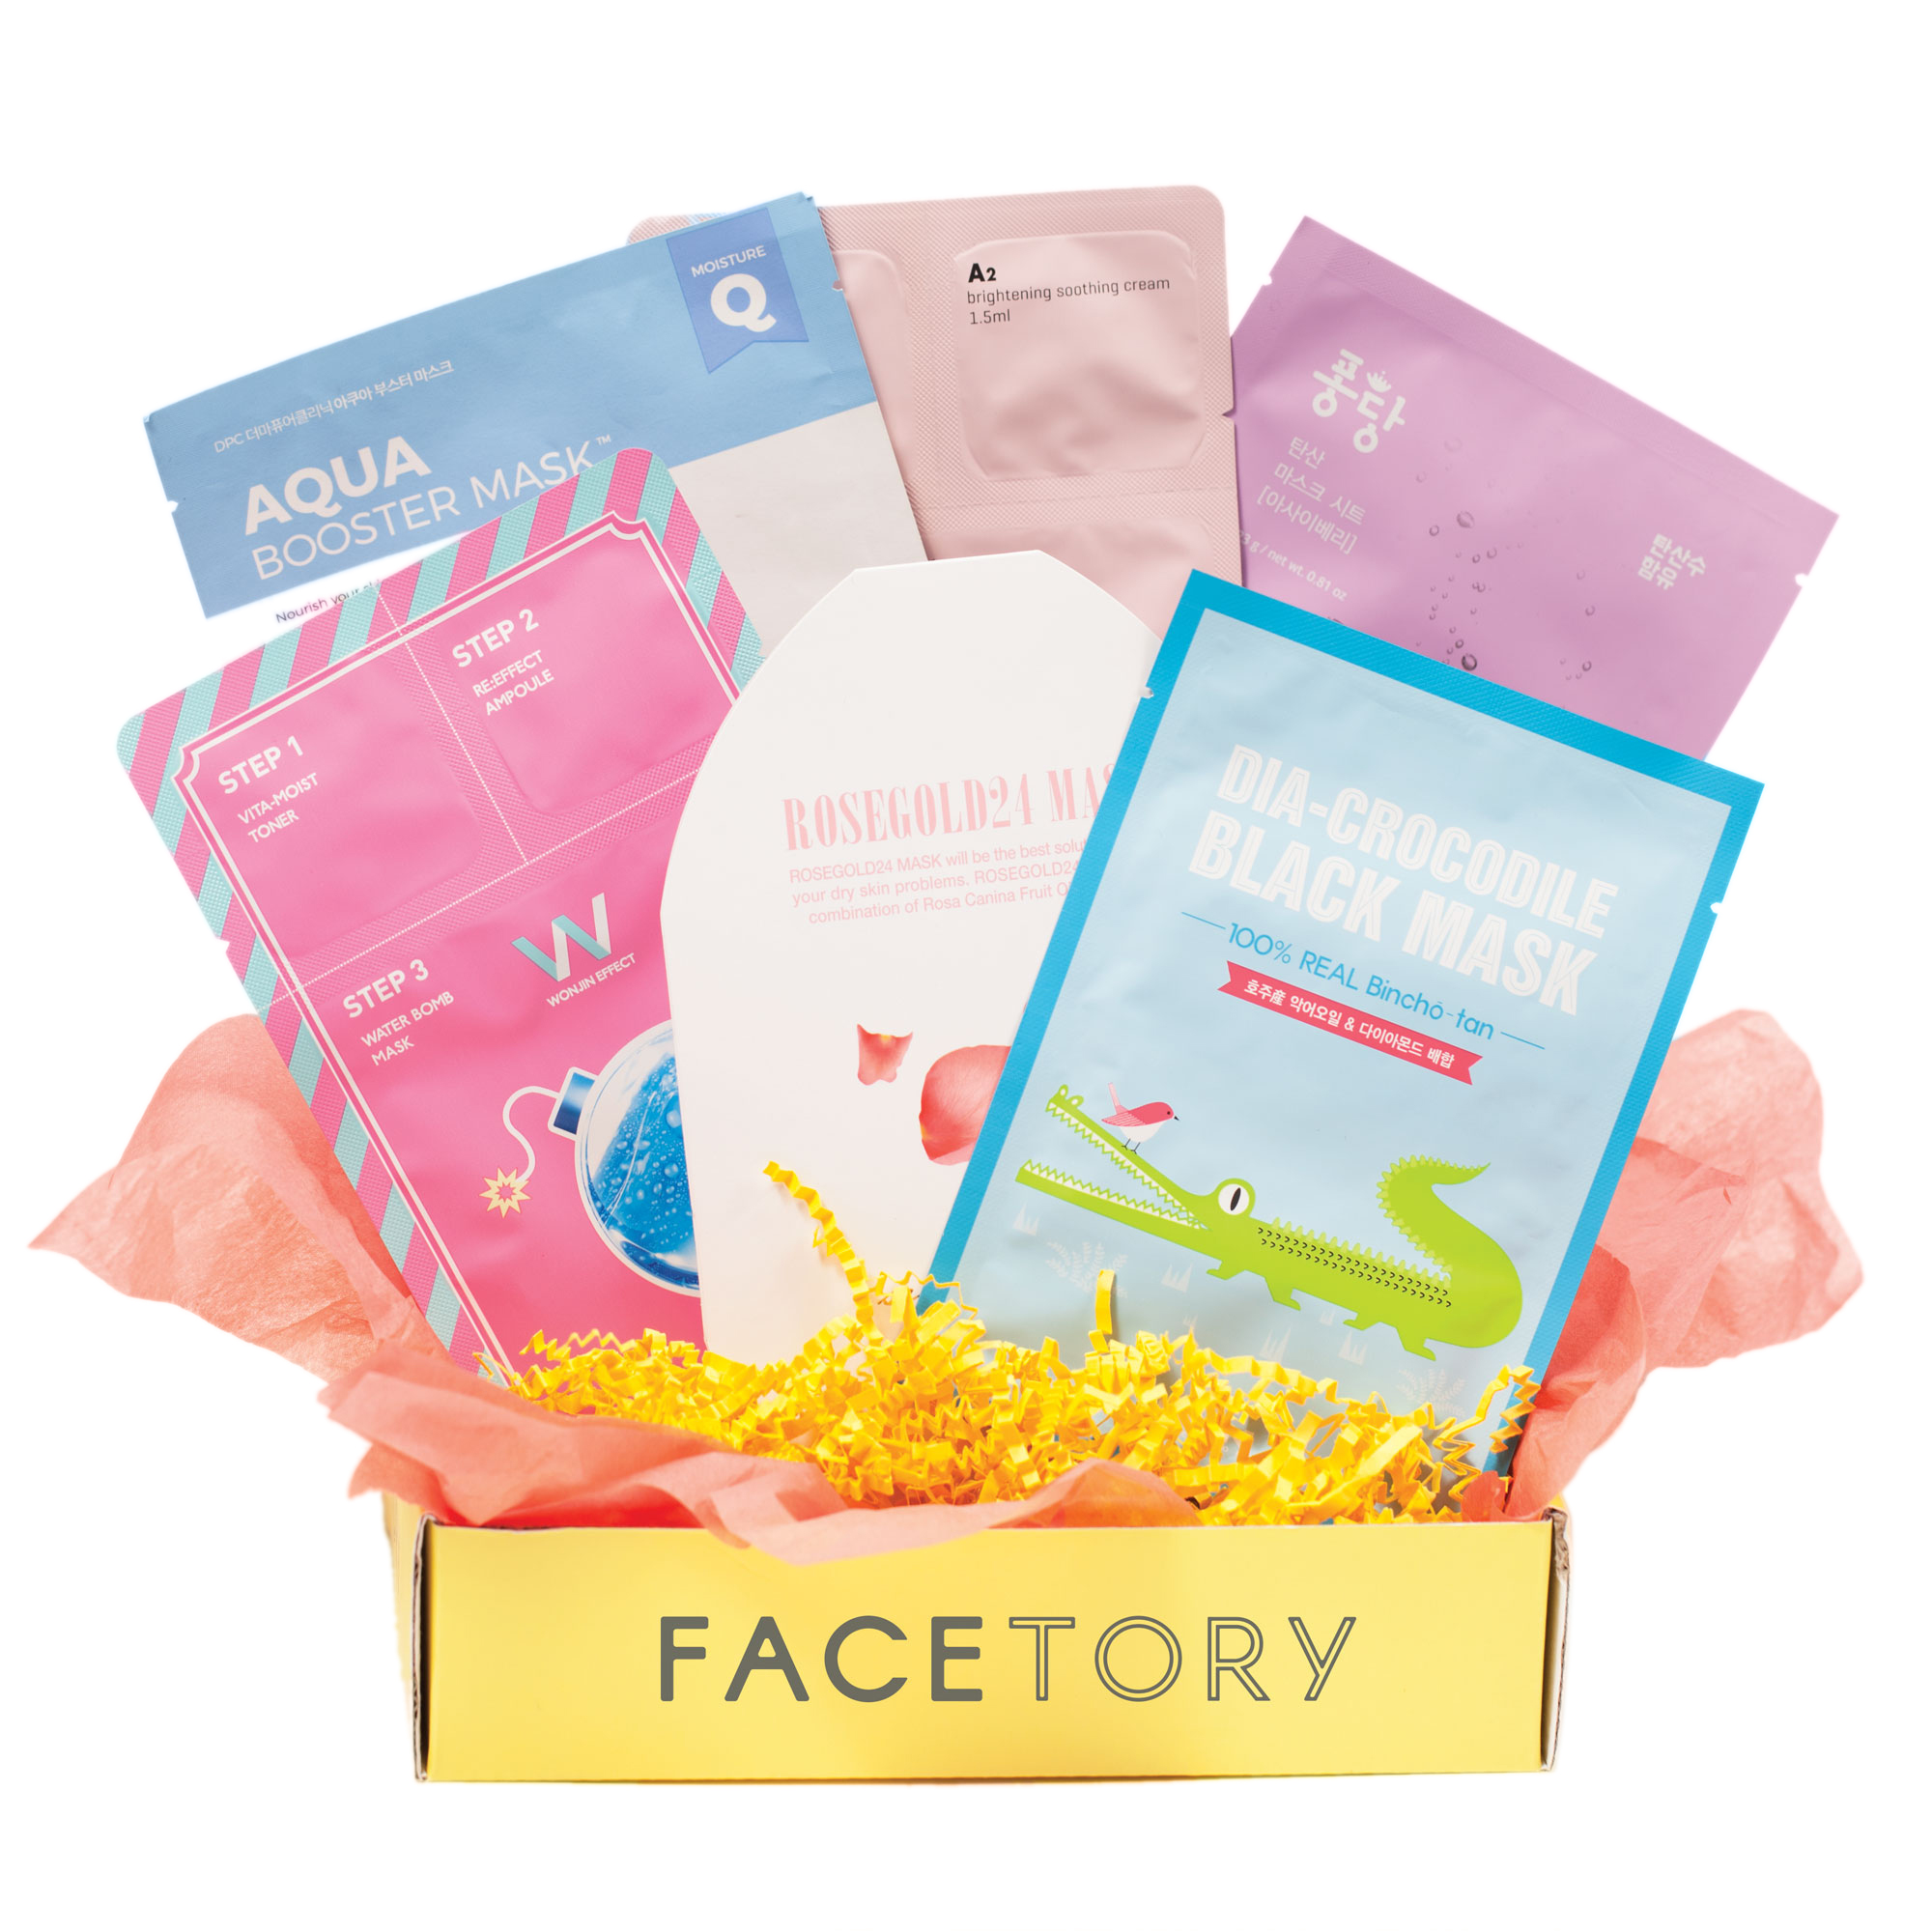 FaceTory - Handpicked Korean Sheet Masks Subscription Box: 4-Ever Fresh (Best Men's Subscription Boxes 2019)